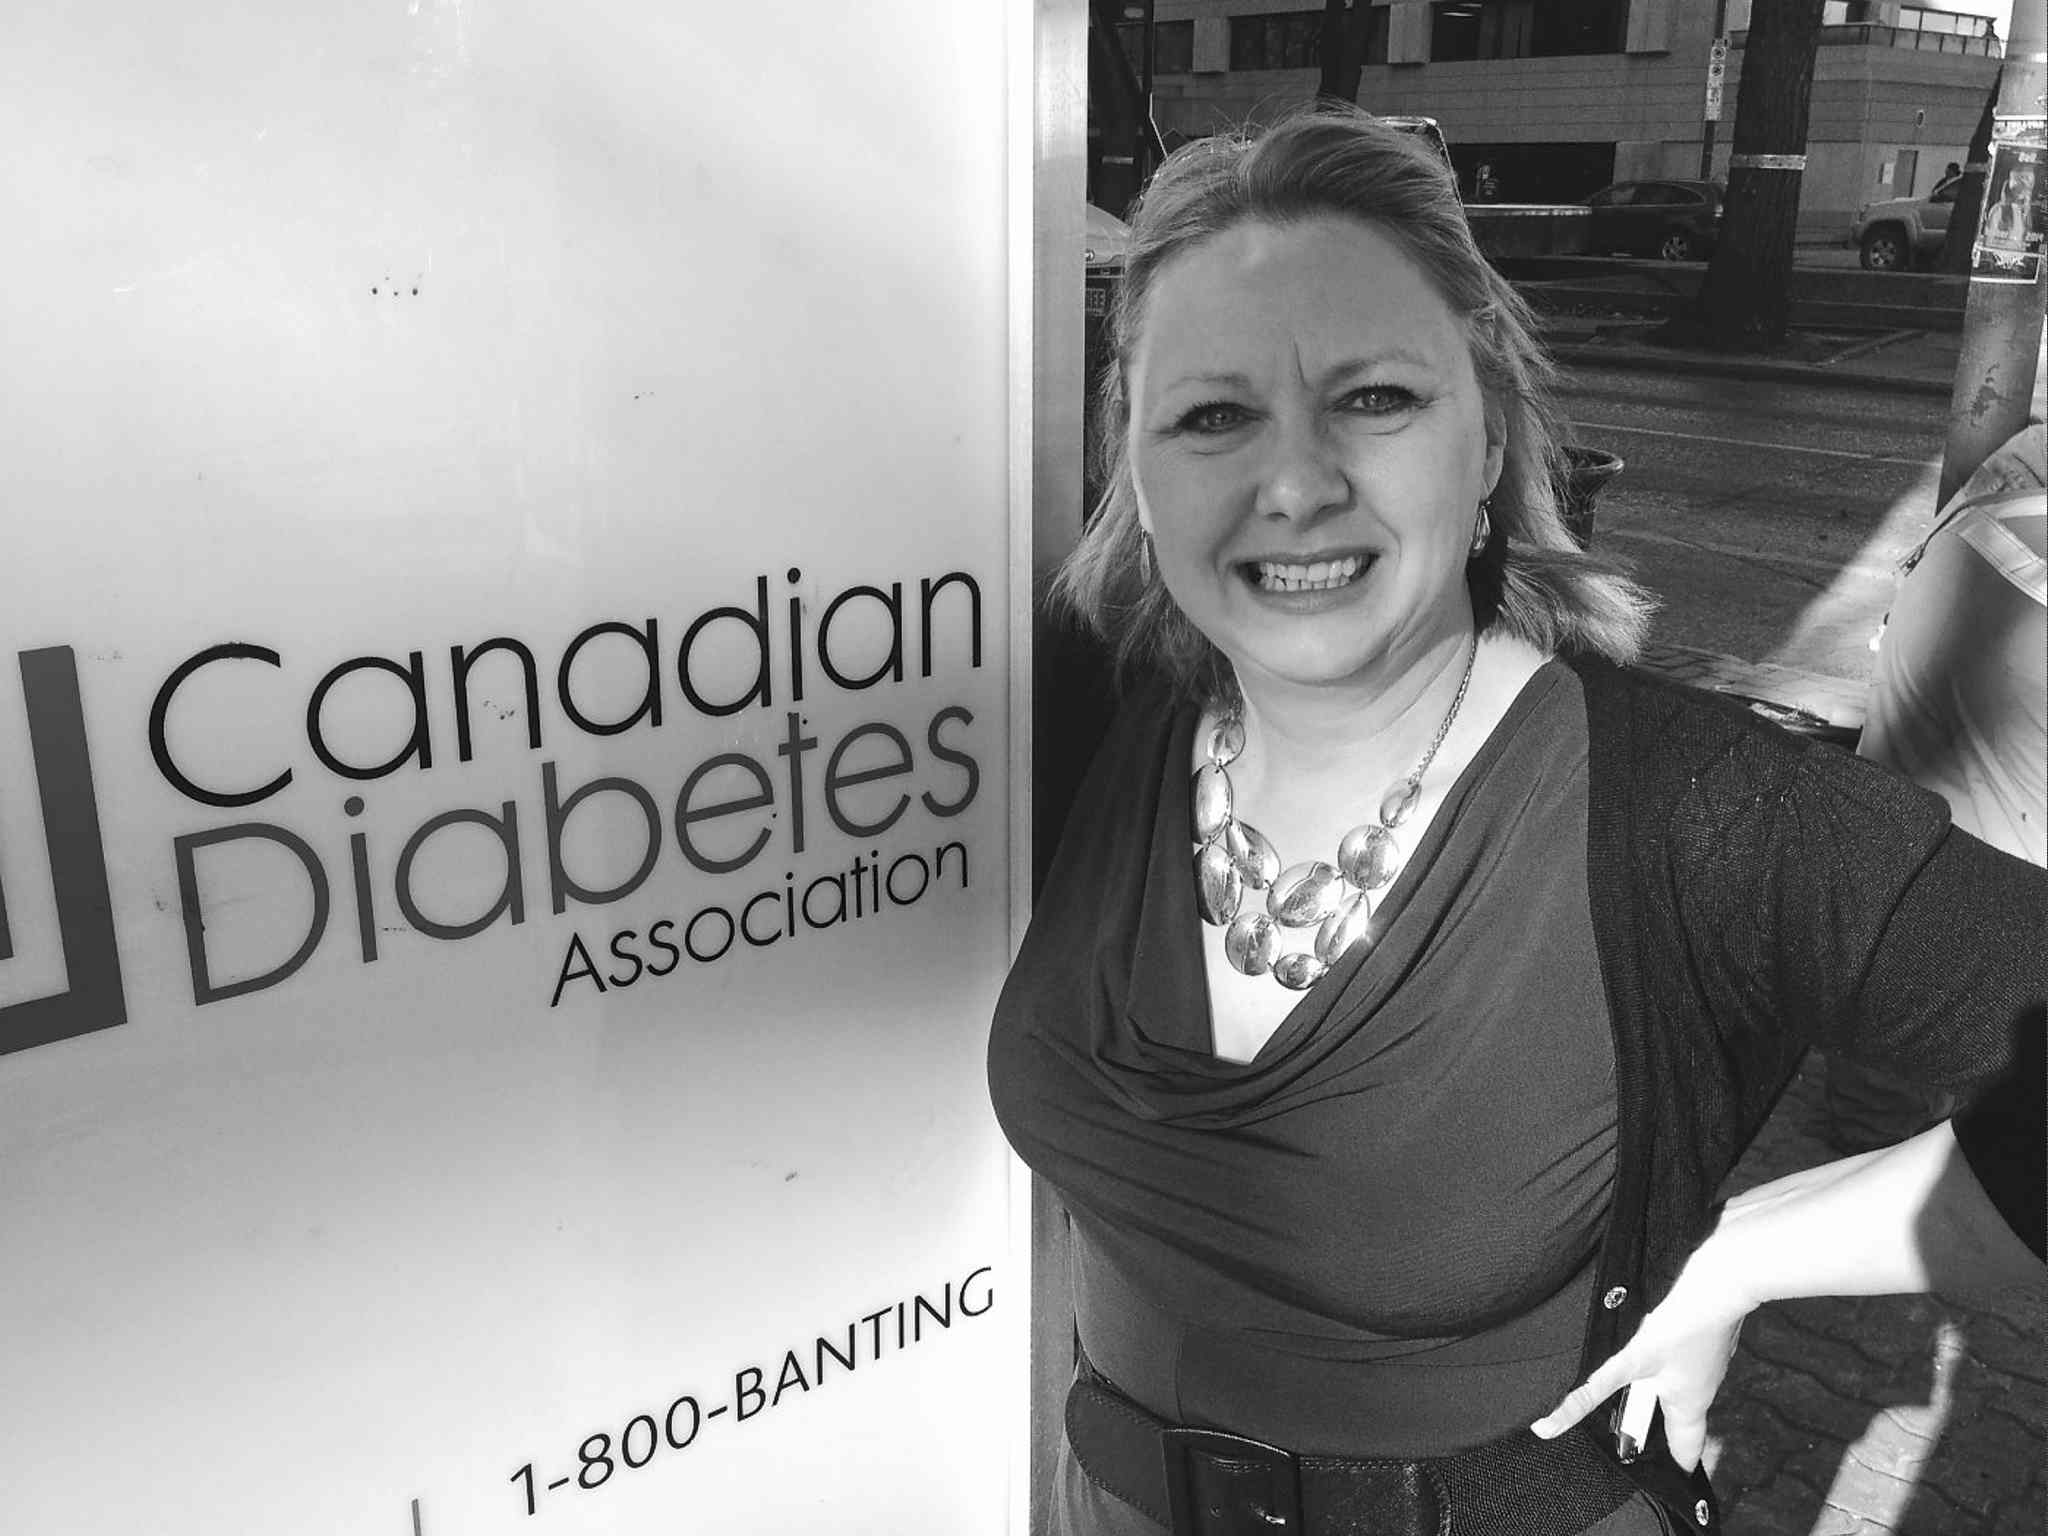 Andrea Kwasnicki hopes hundreds of people head to Saturday's public forum on diabetes.